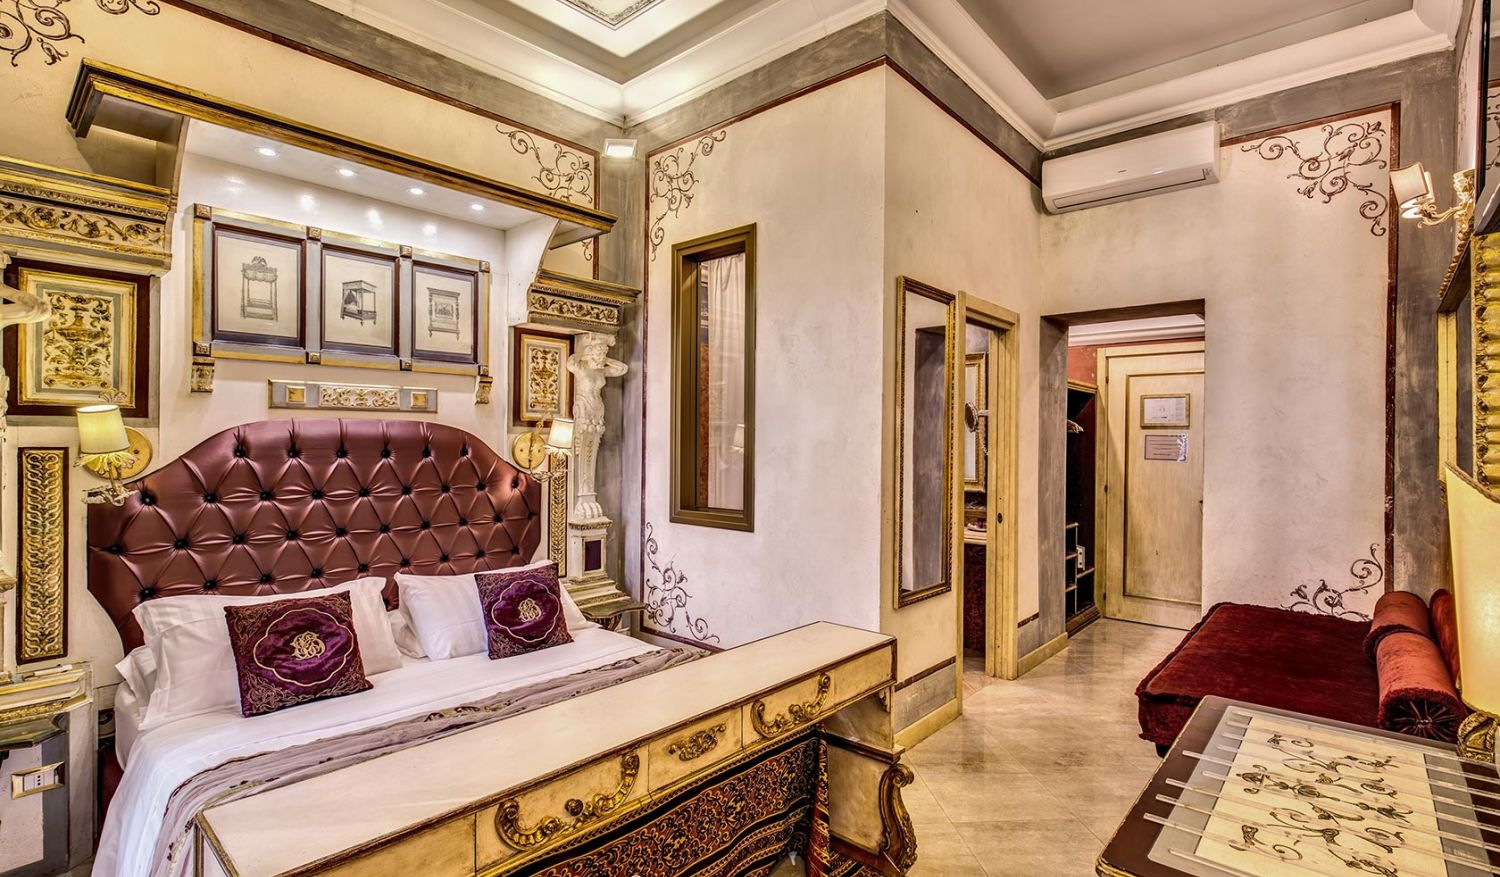 Hotel in the center of Rome has welcoming triple rooms